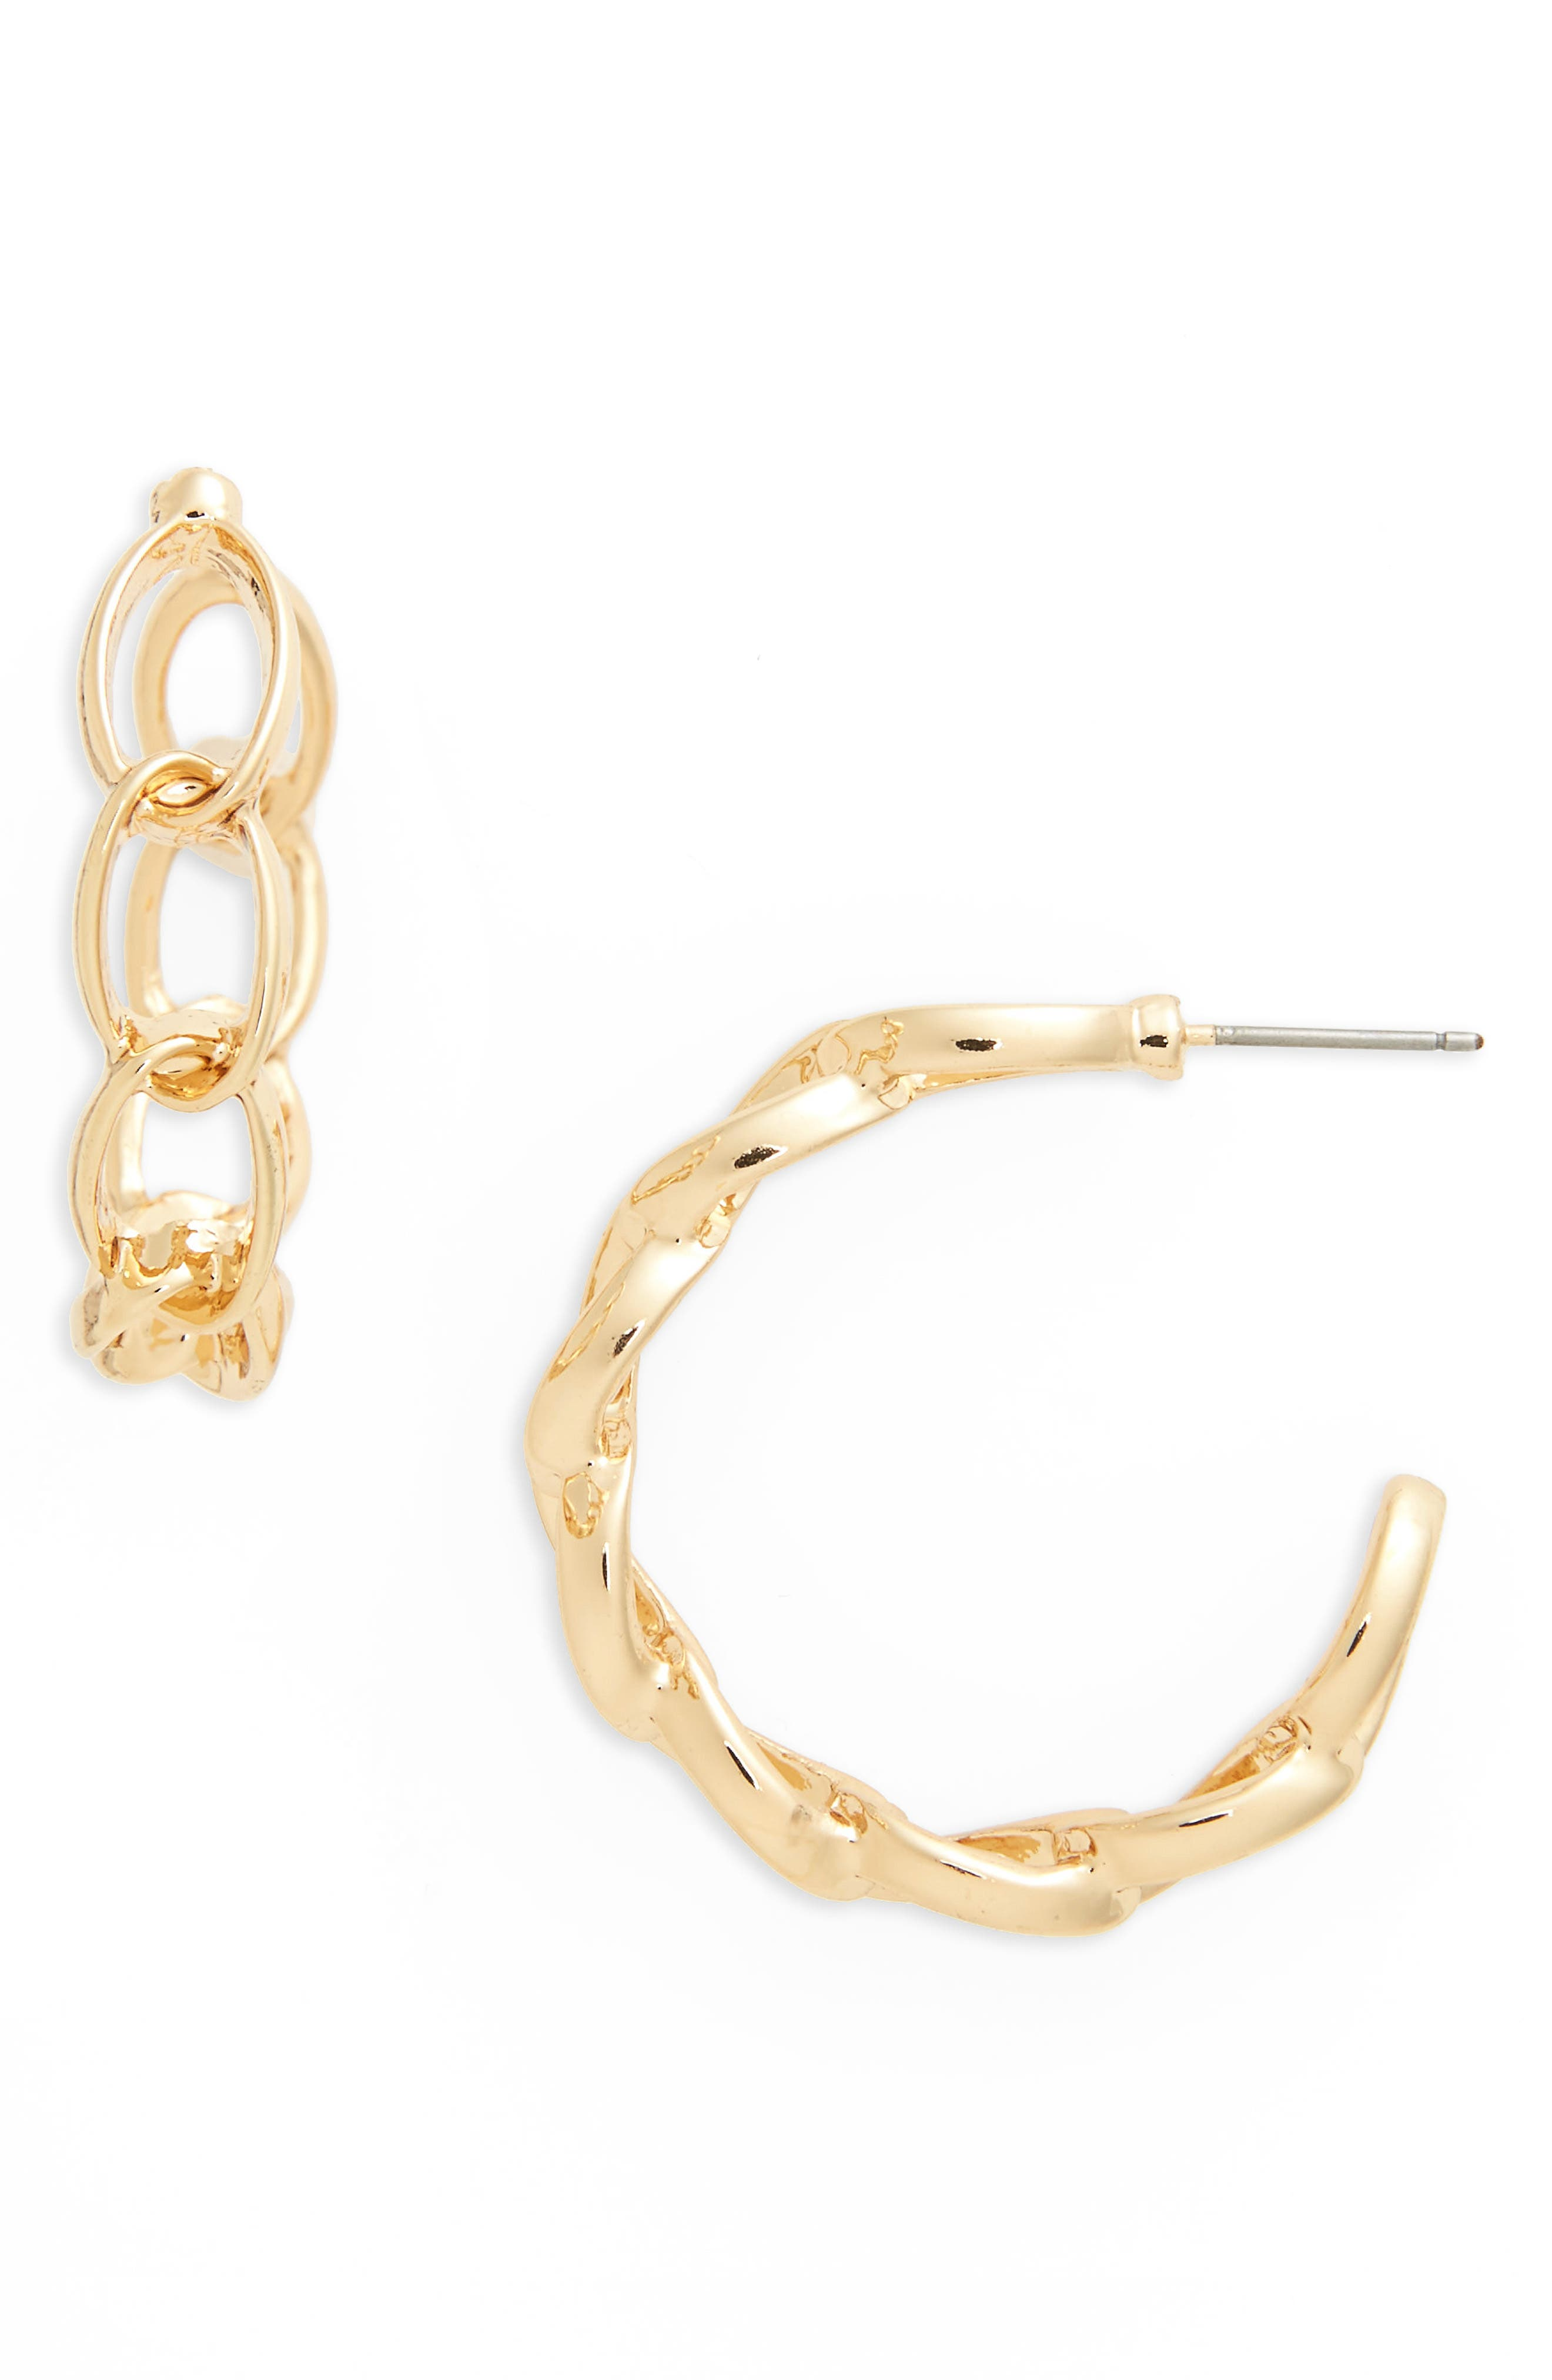 Chain Link Hoop Earrings,                             Main thumbnail 1, color,                             710